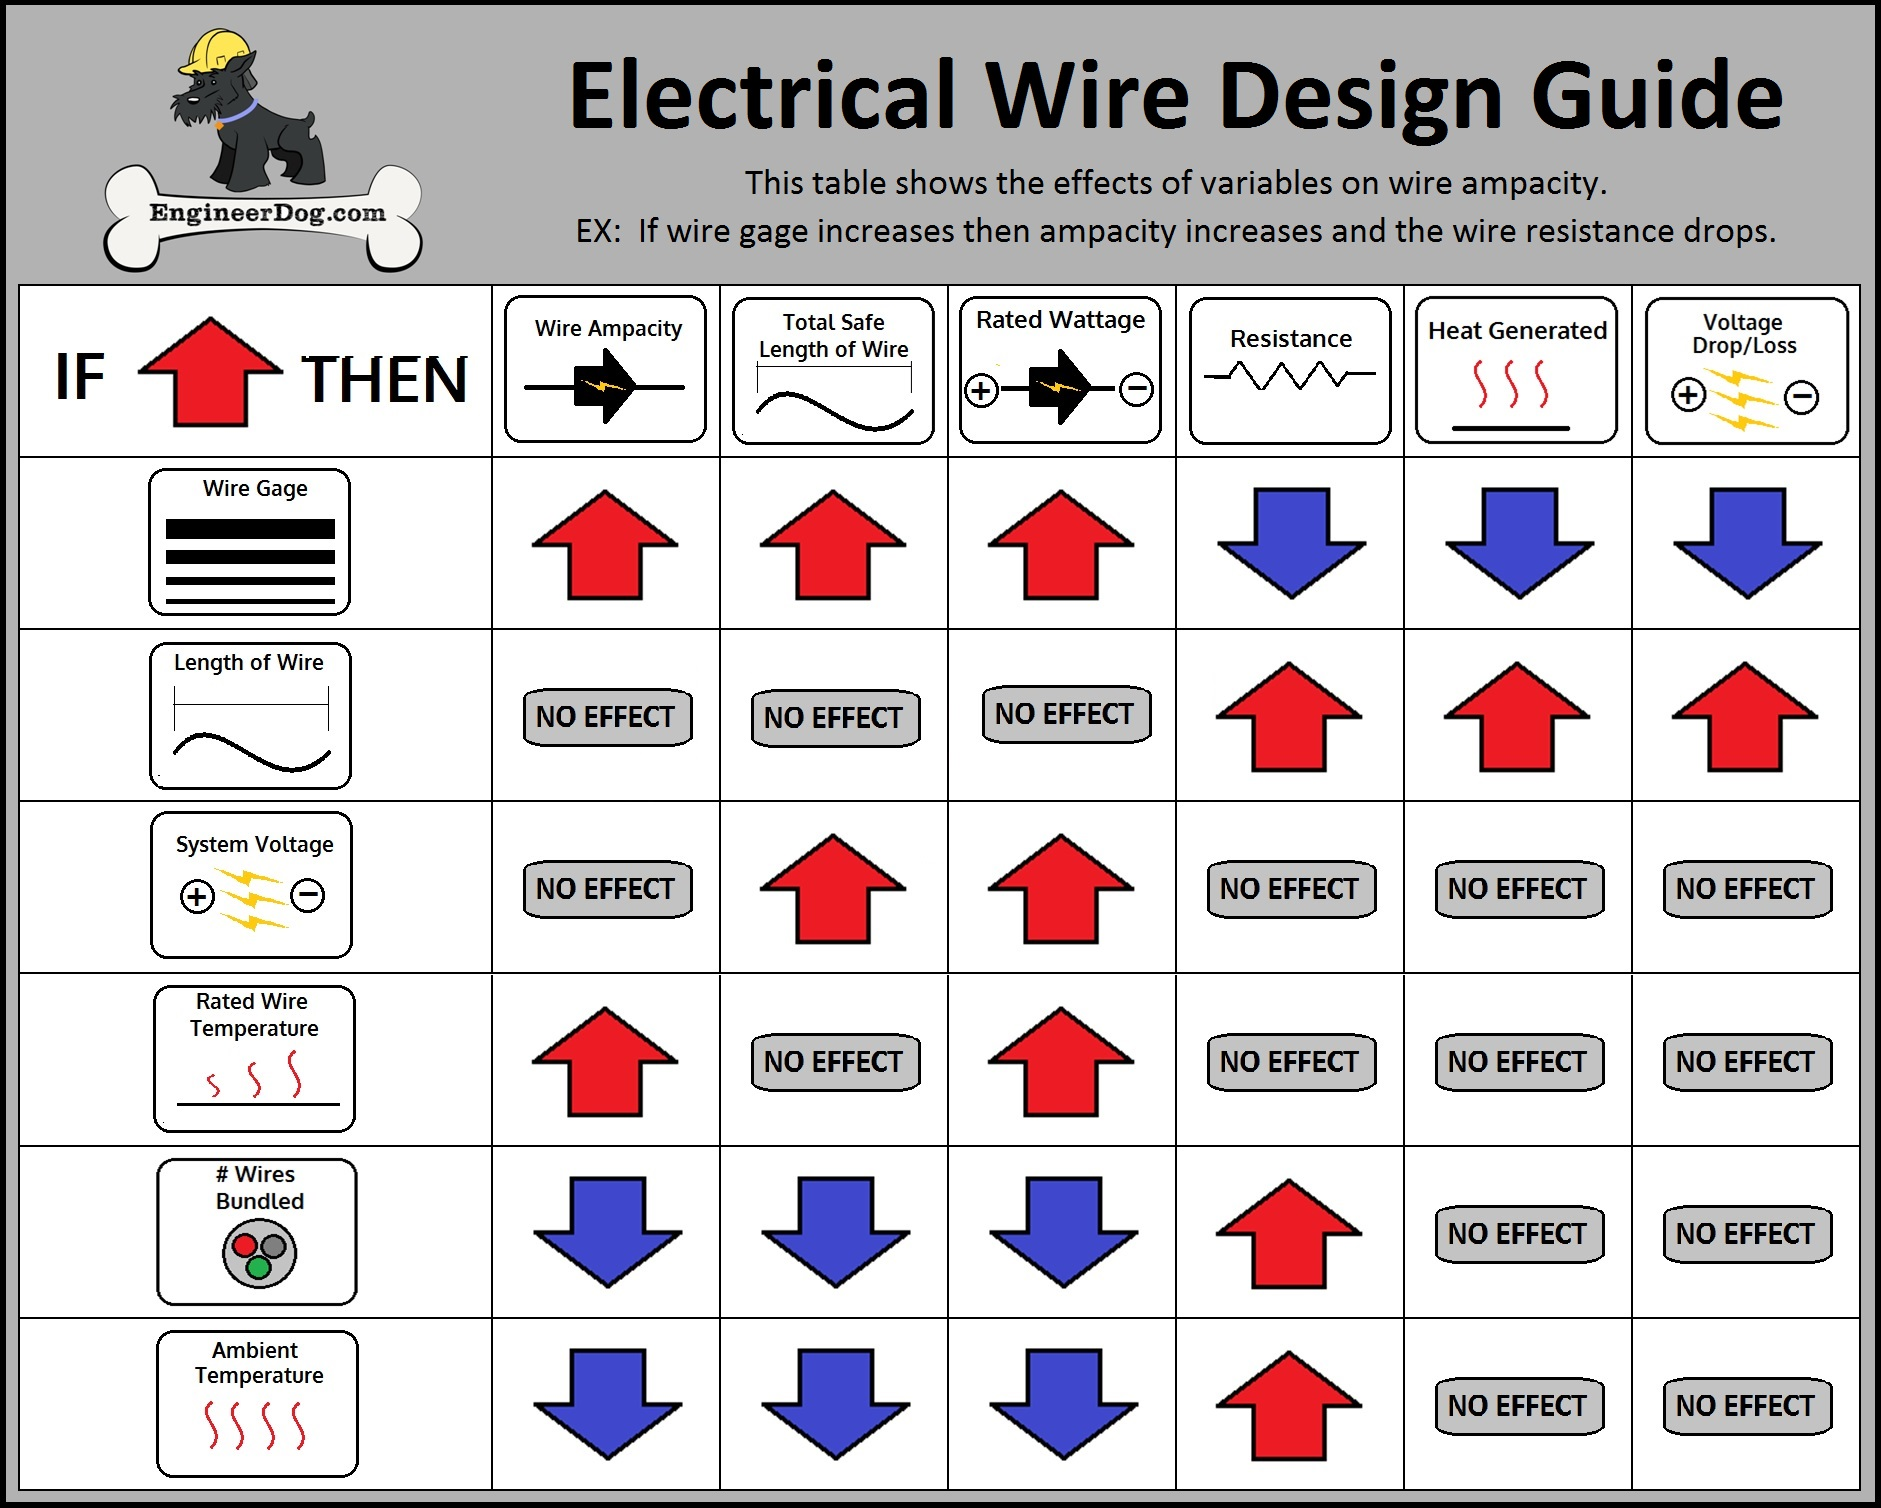 Wire amp chart calculator wire center free electrical wire gauge sizing calculator engineerdog rh engineerdog com 30 amp wire size calculator wire gauge vs amps greentooth Image collections